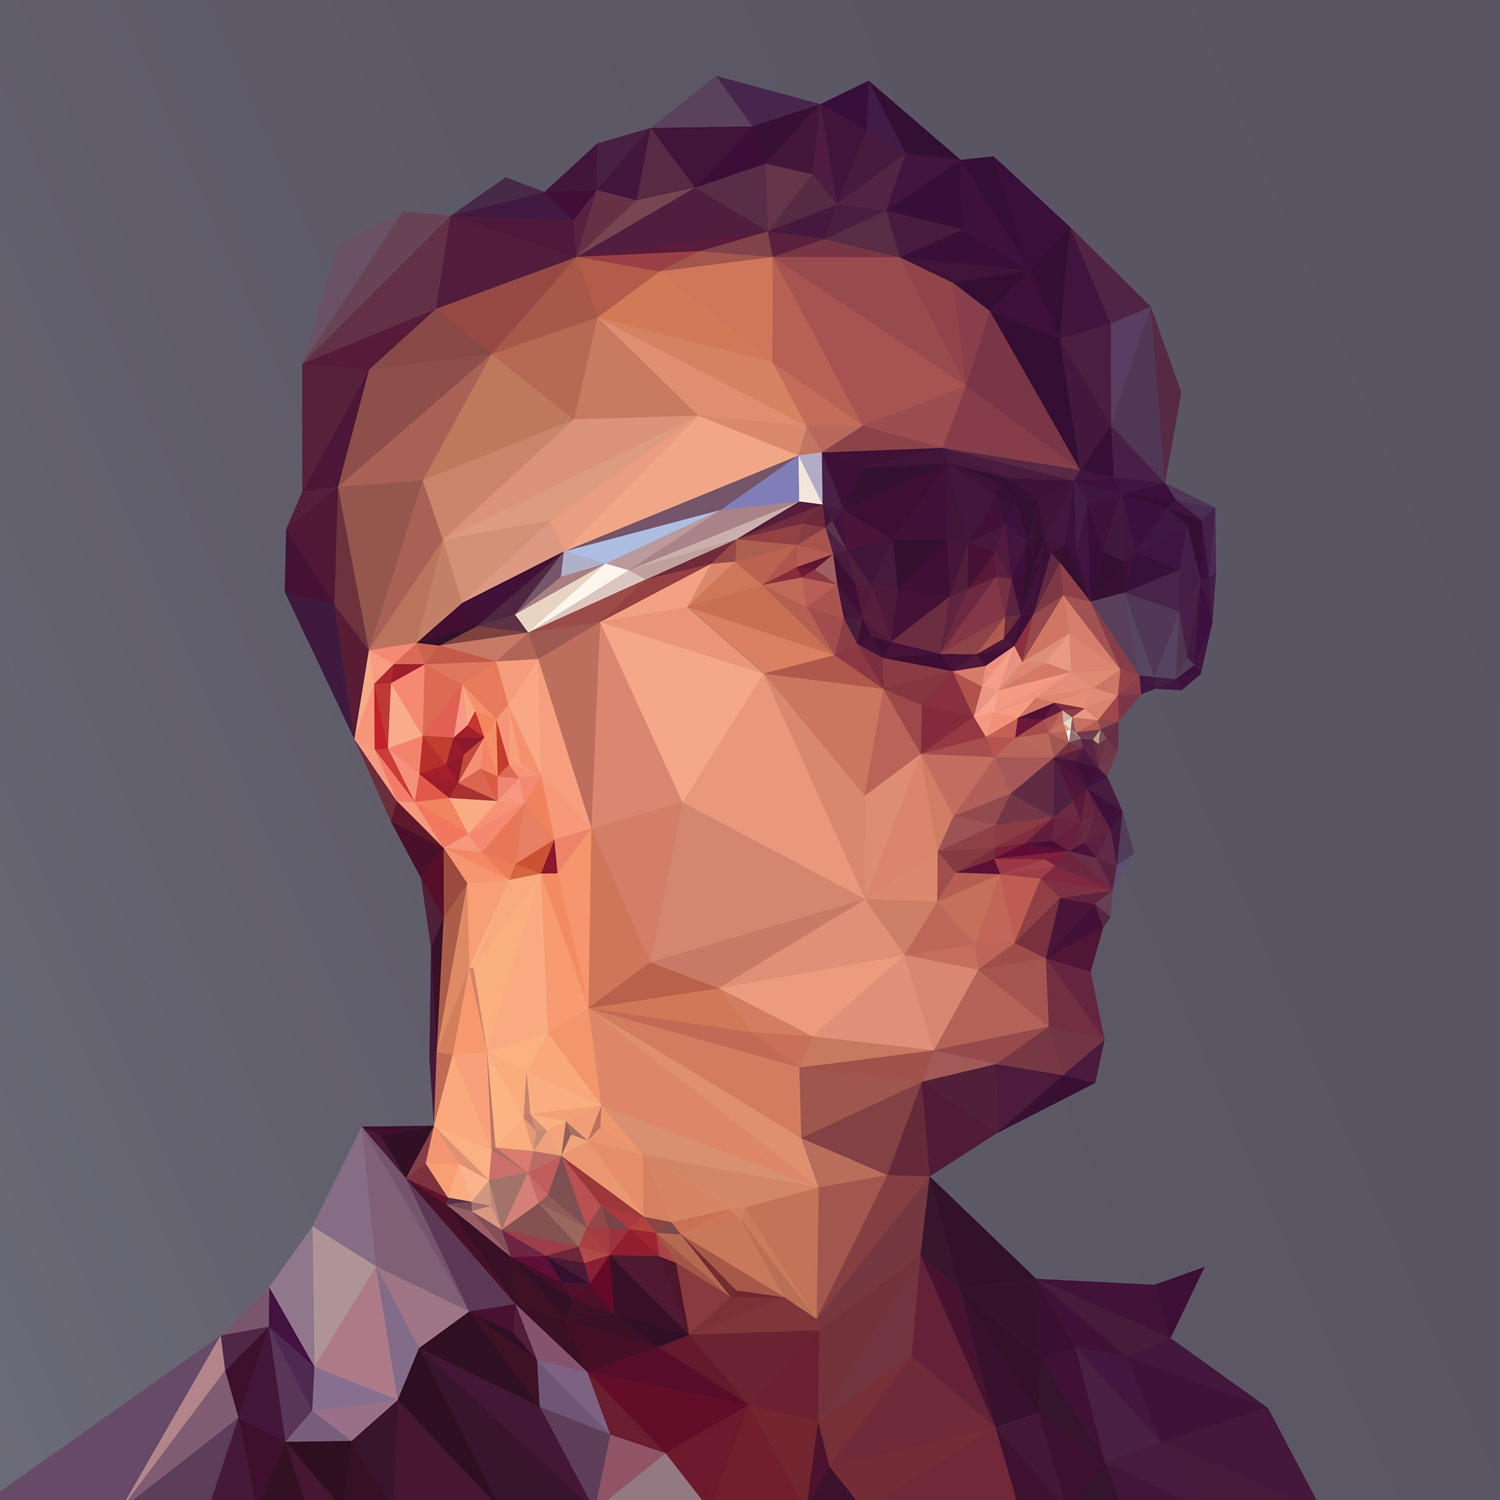 Favorit Create a low-poly portrait - Digital Arts BN82